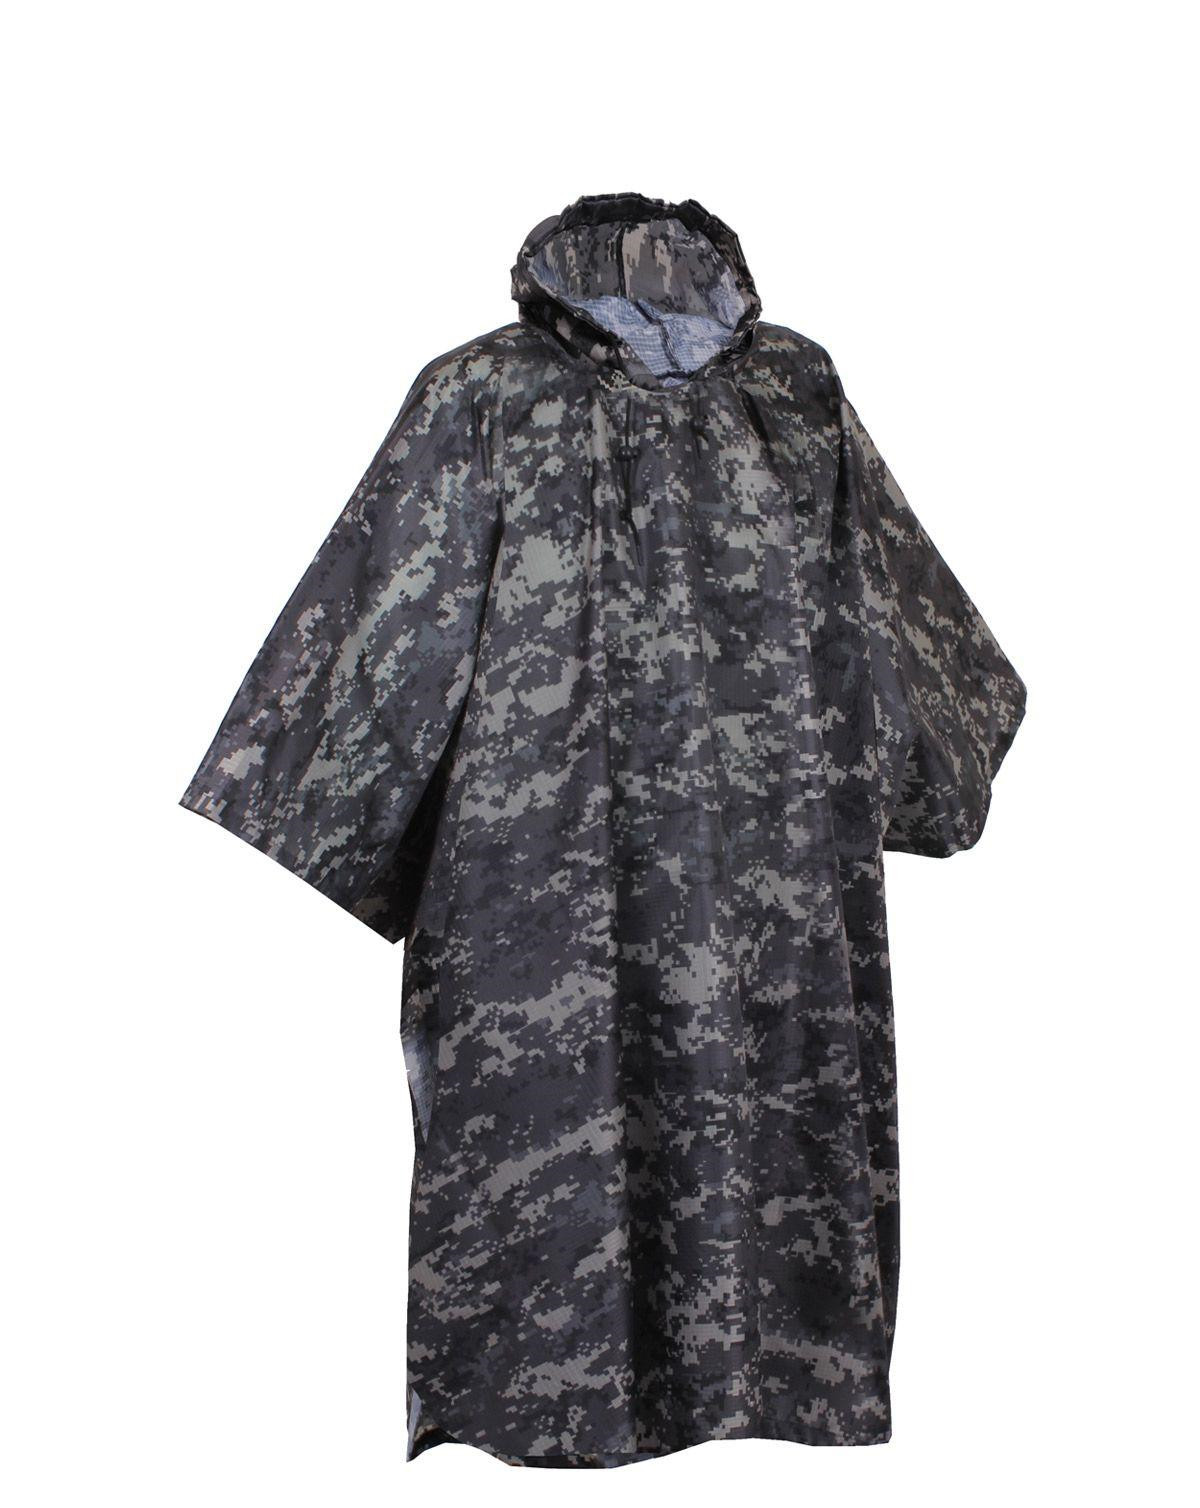 Rothco Military Poncho - Rip-stop (Subdued Urban Digital Camo, One Size)